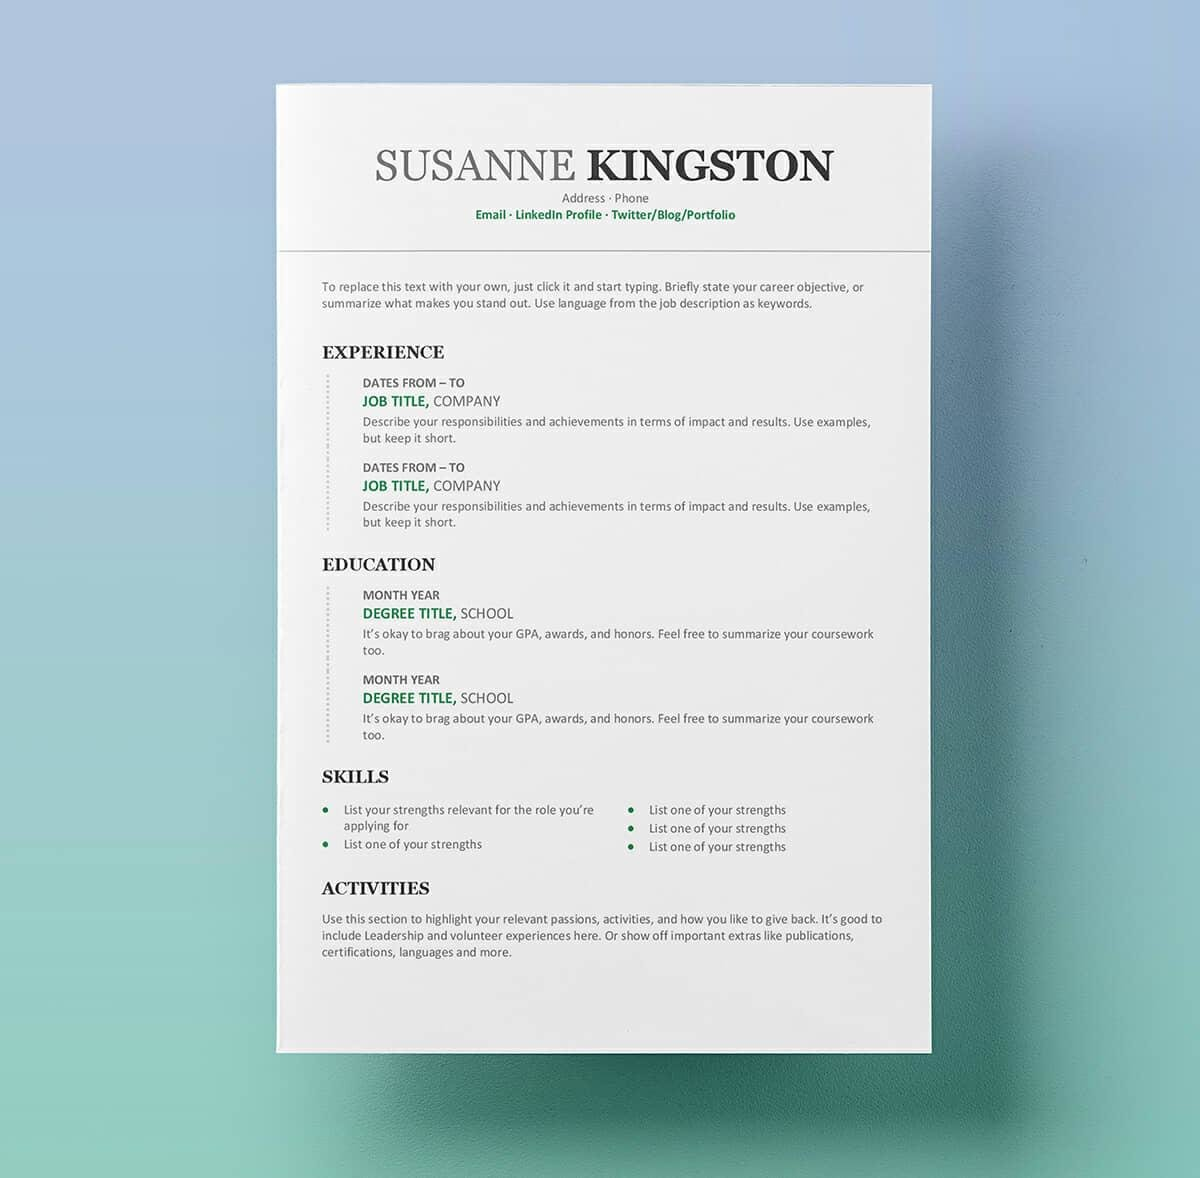 resume templates for word free 15 examples for download - Word Resume Templates Free